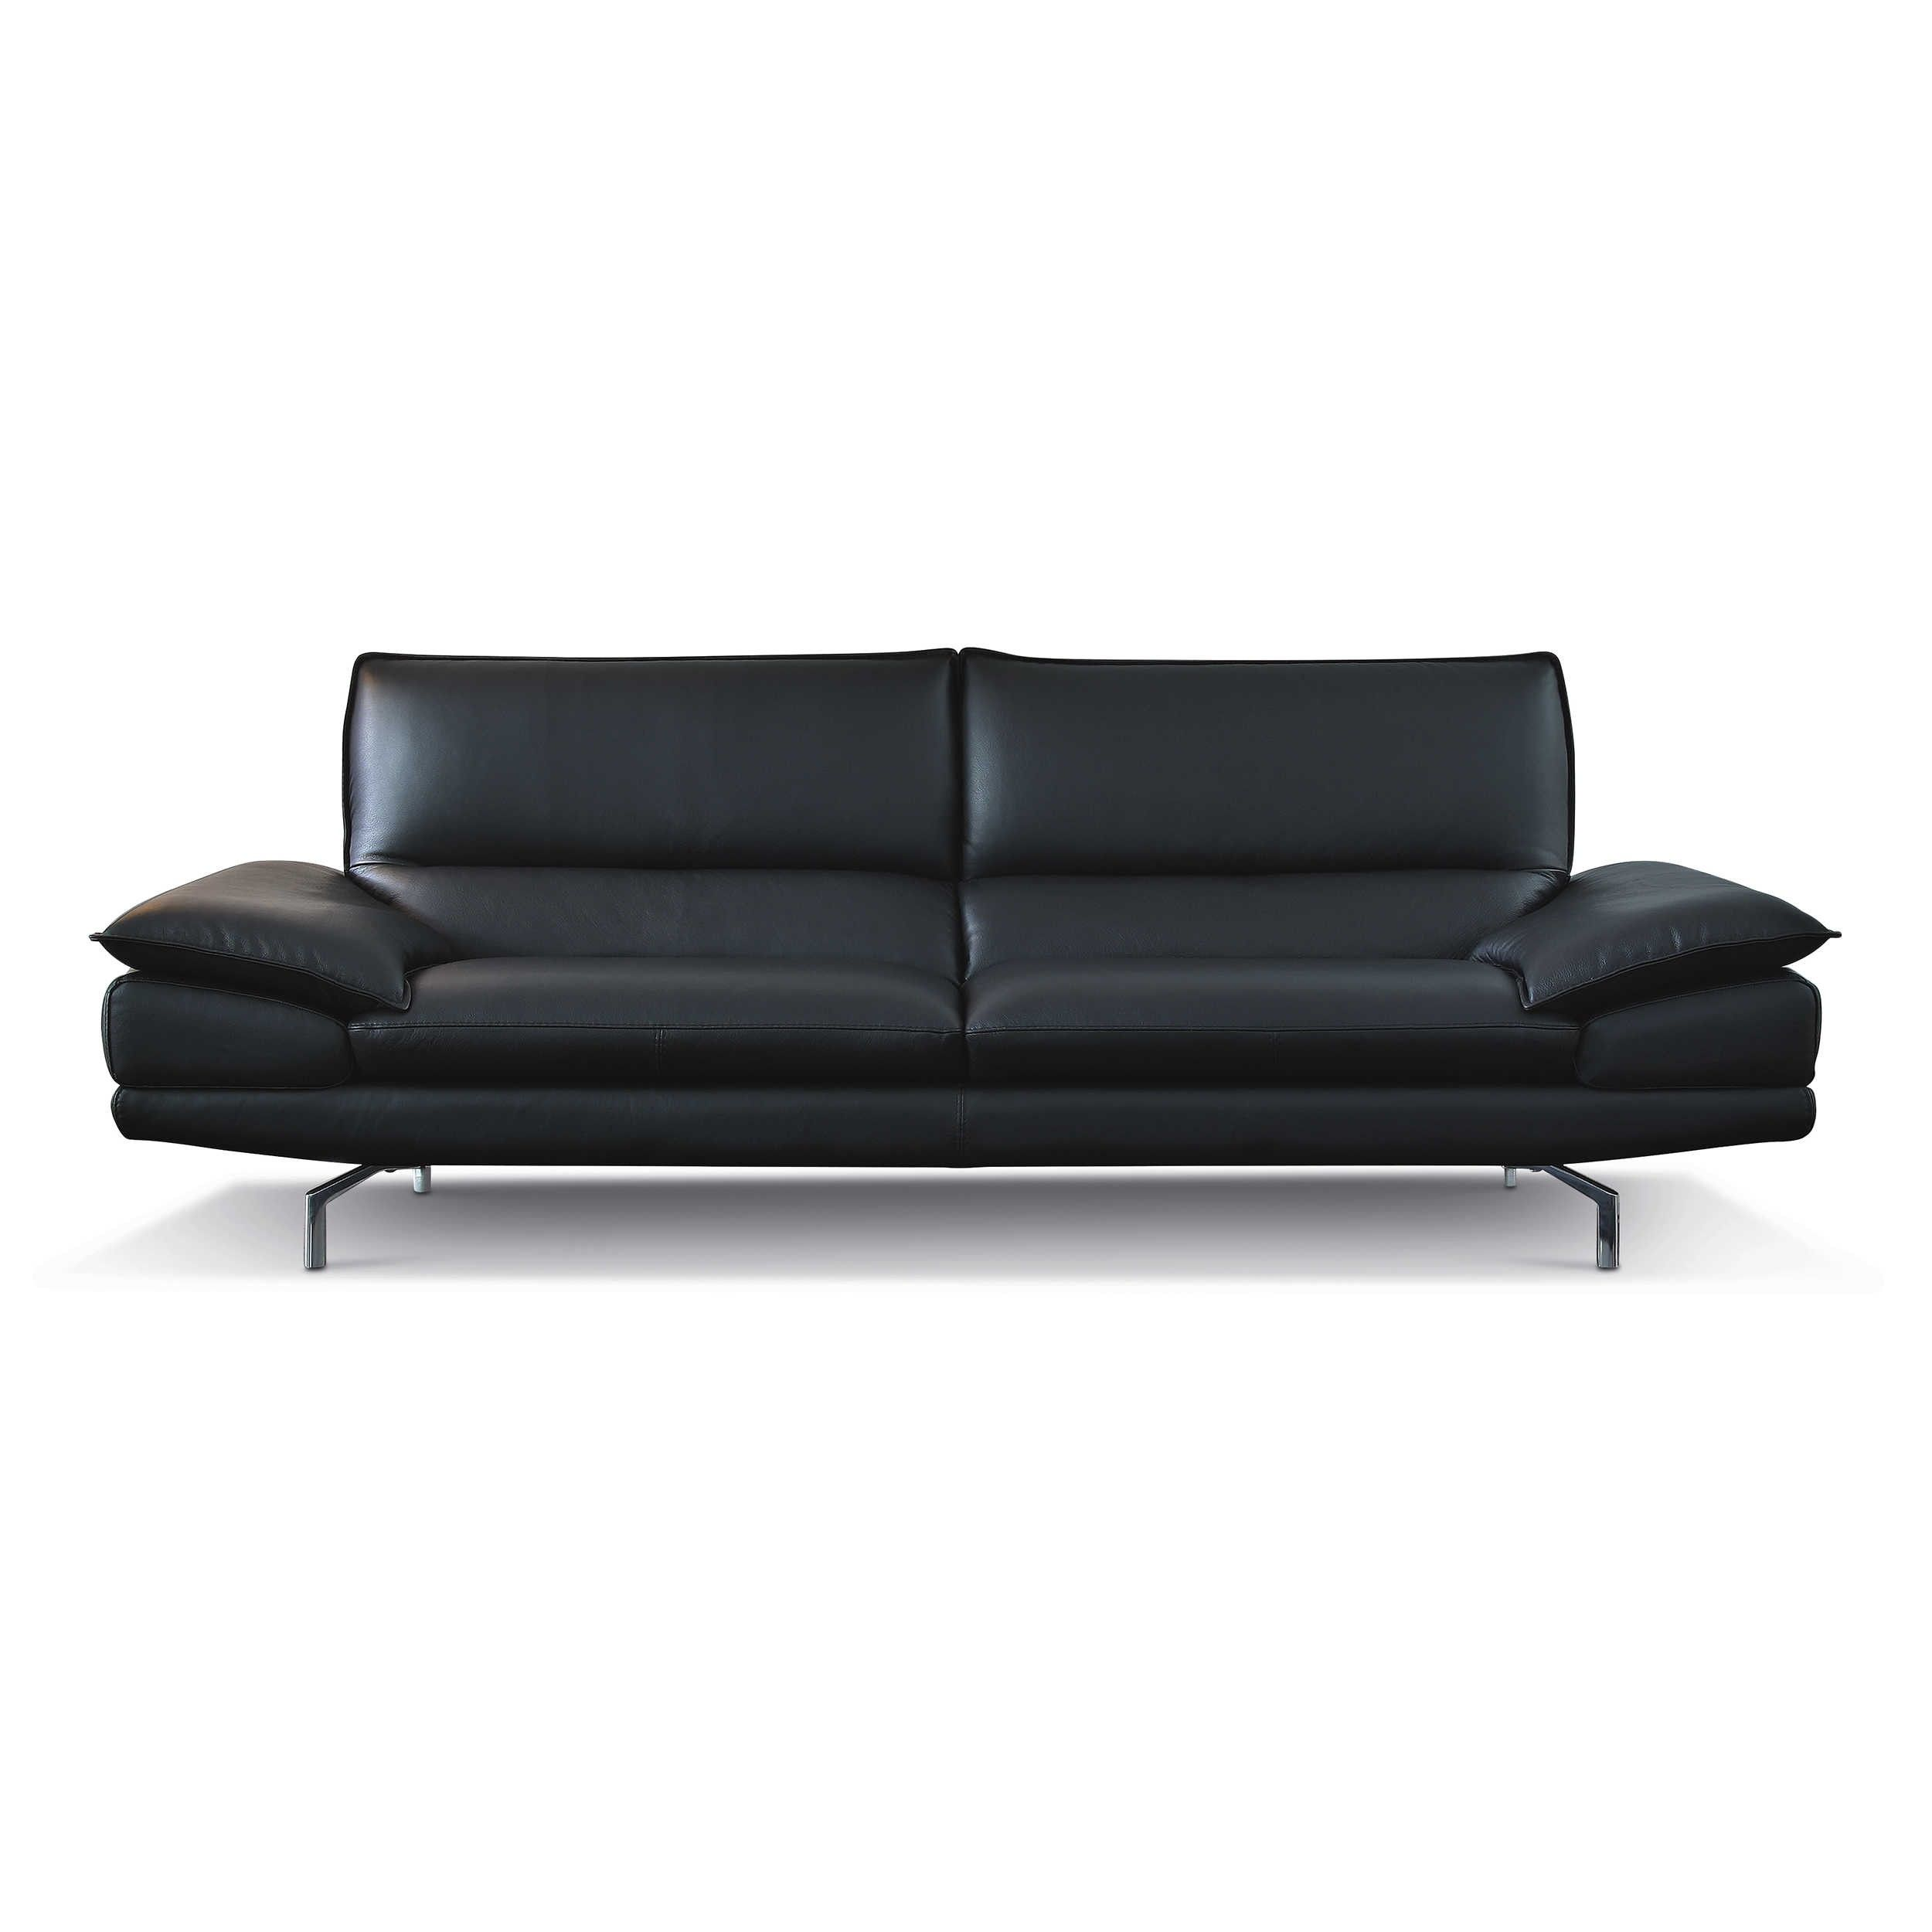 calia sofa dave prm 852 breite 221 cm h he 87 cm. Black Bedroom Furniture Sets. Home Design Ideas